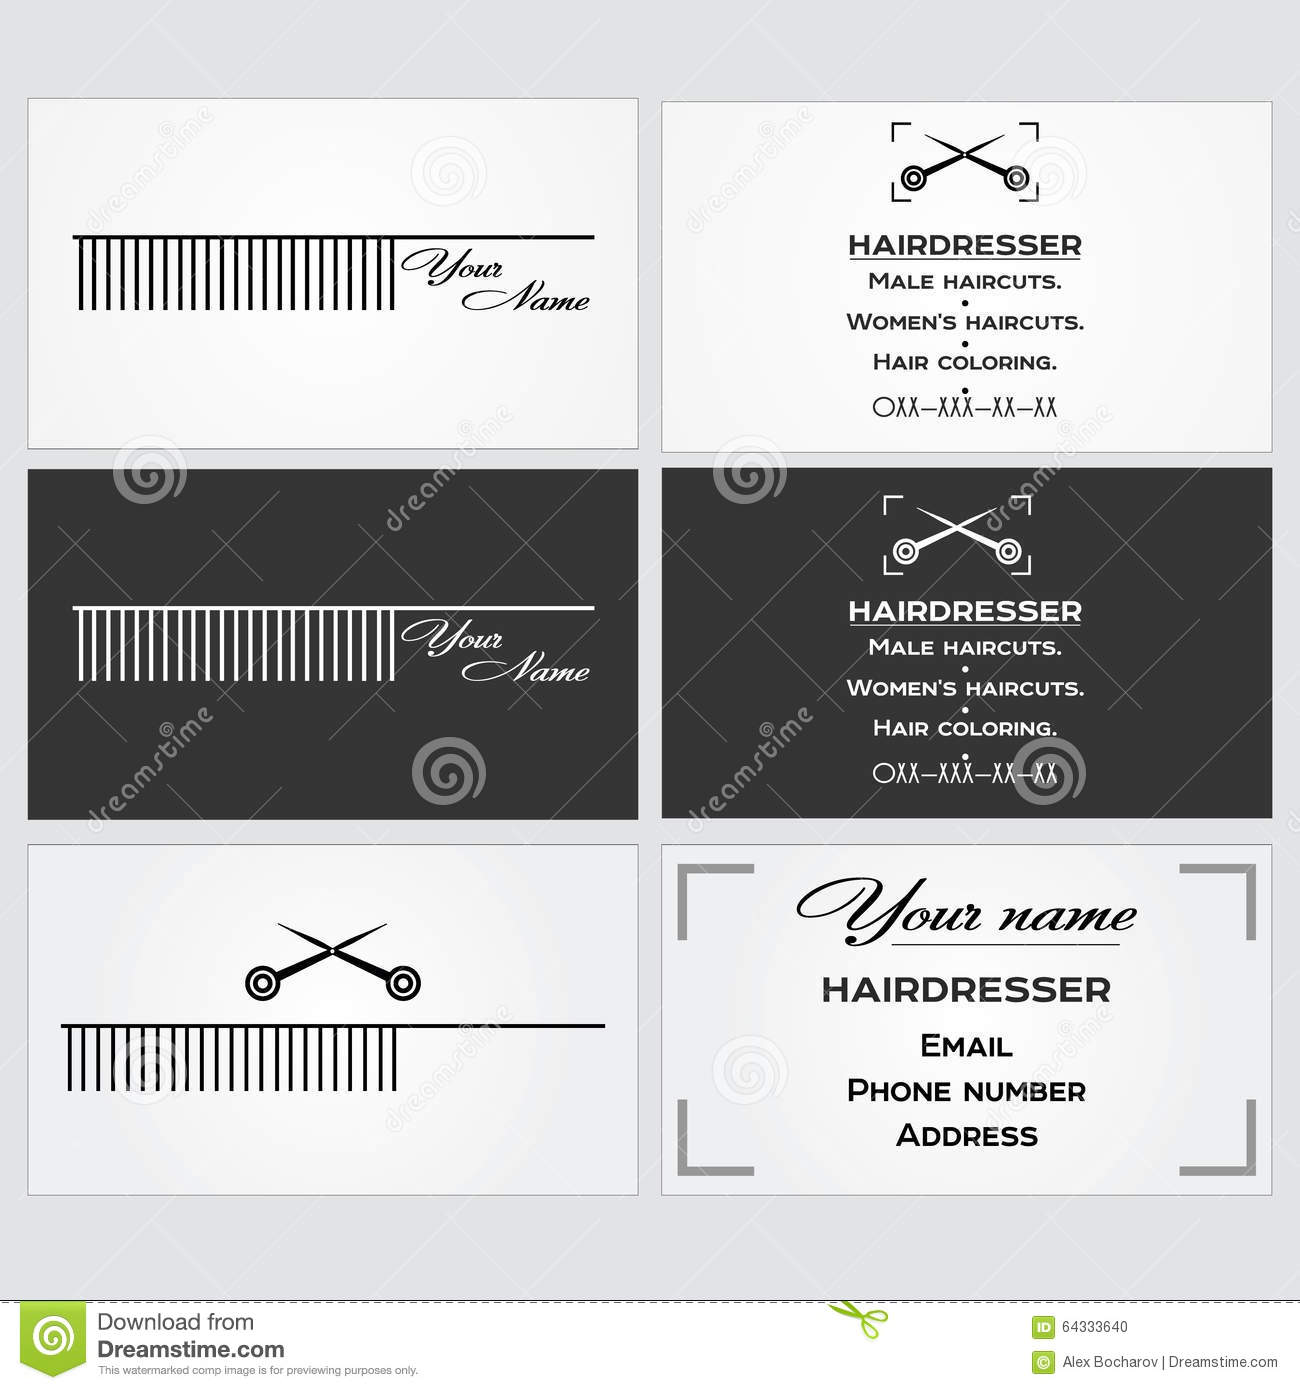 Business Card Template For A Hairdresser. Stock Vector ...